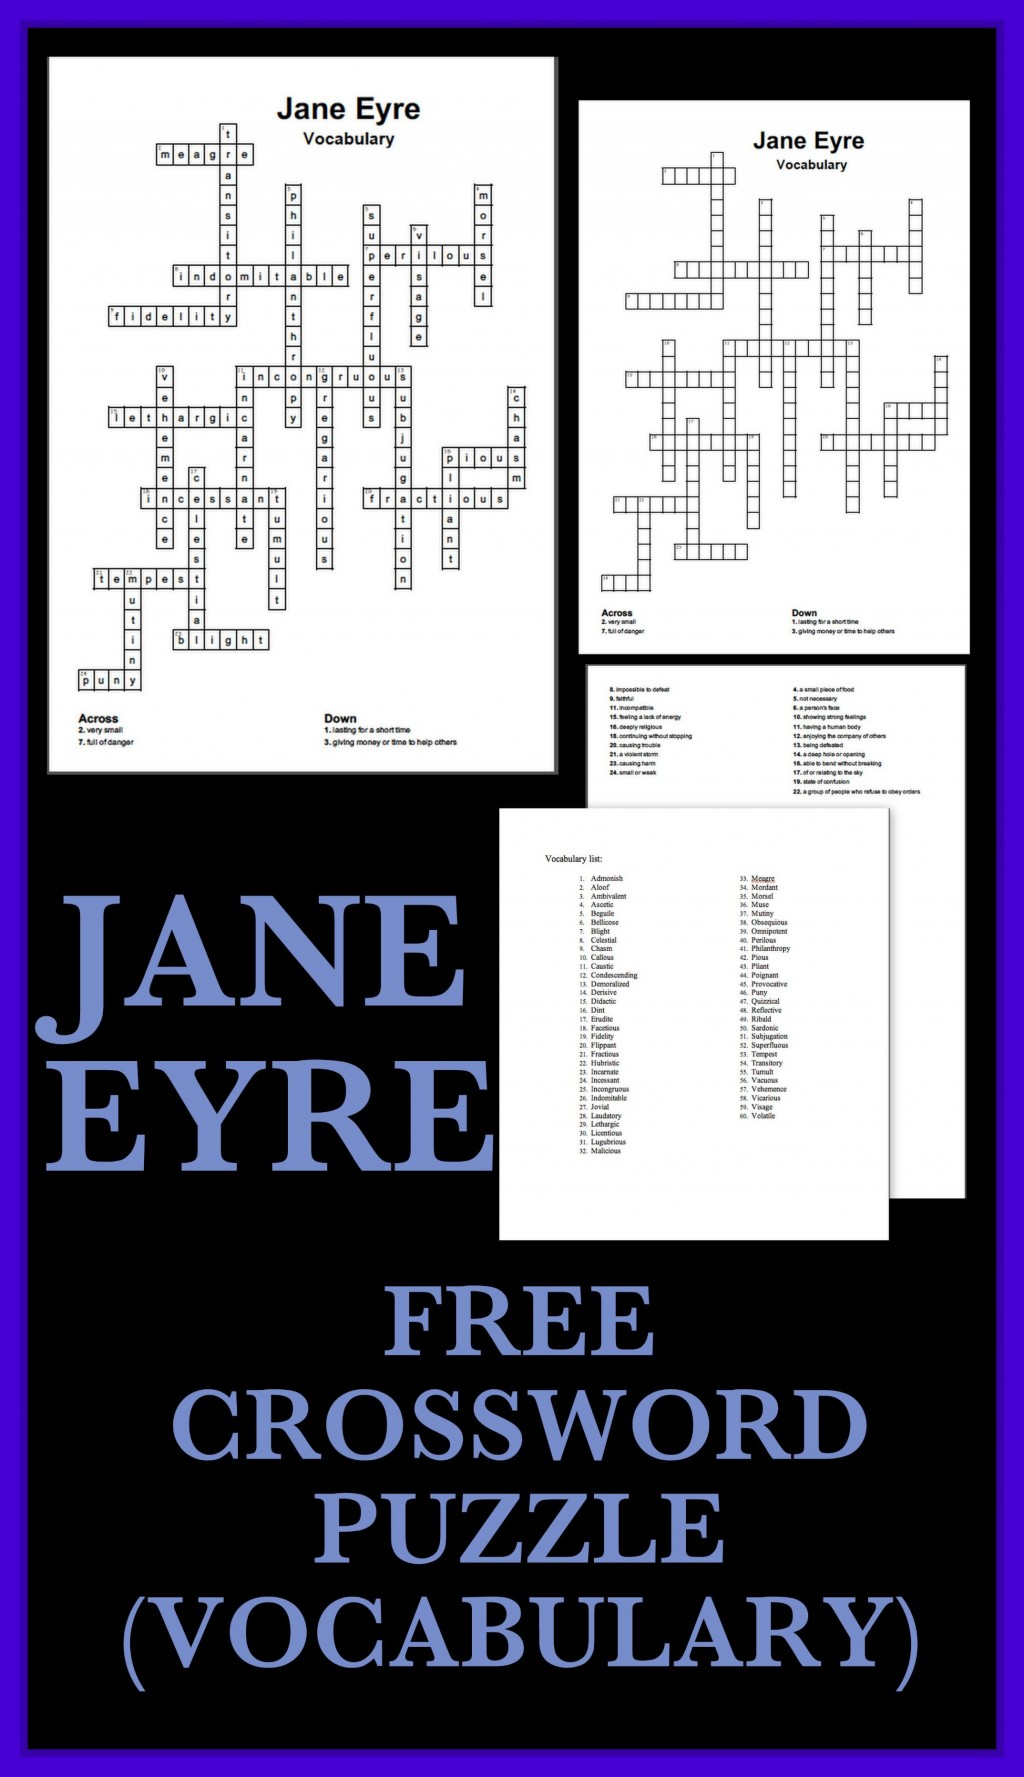 004 Superfluous Part Of An Essay Crossword Awesome Clue Large